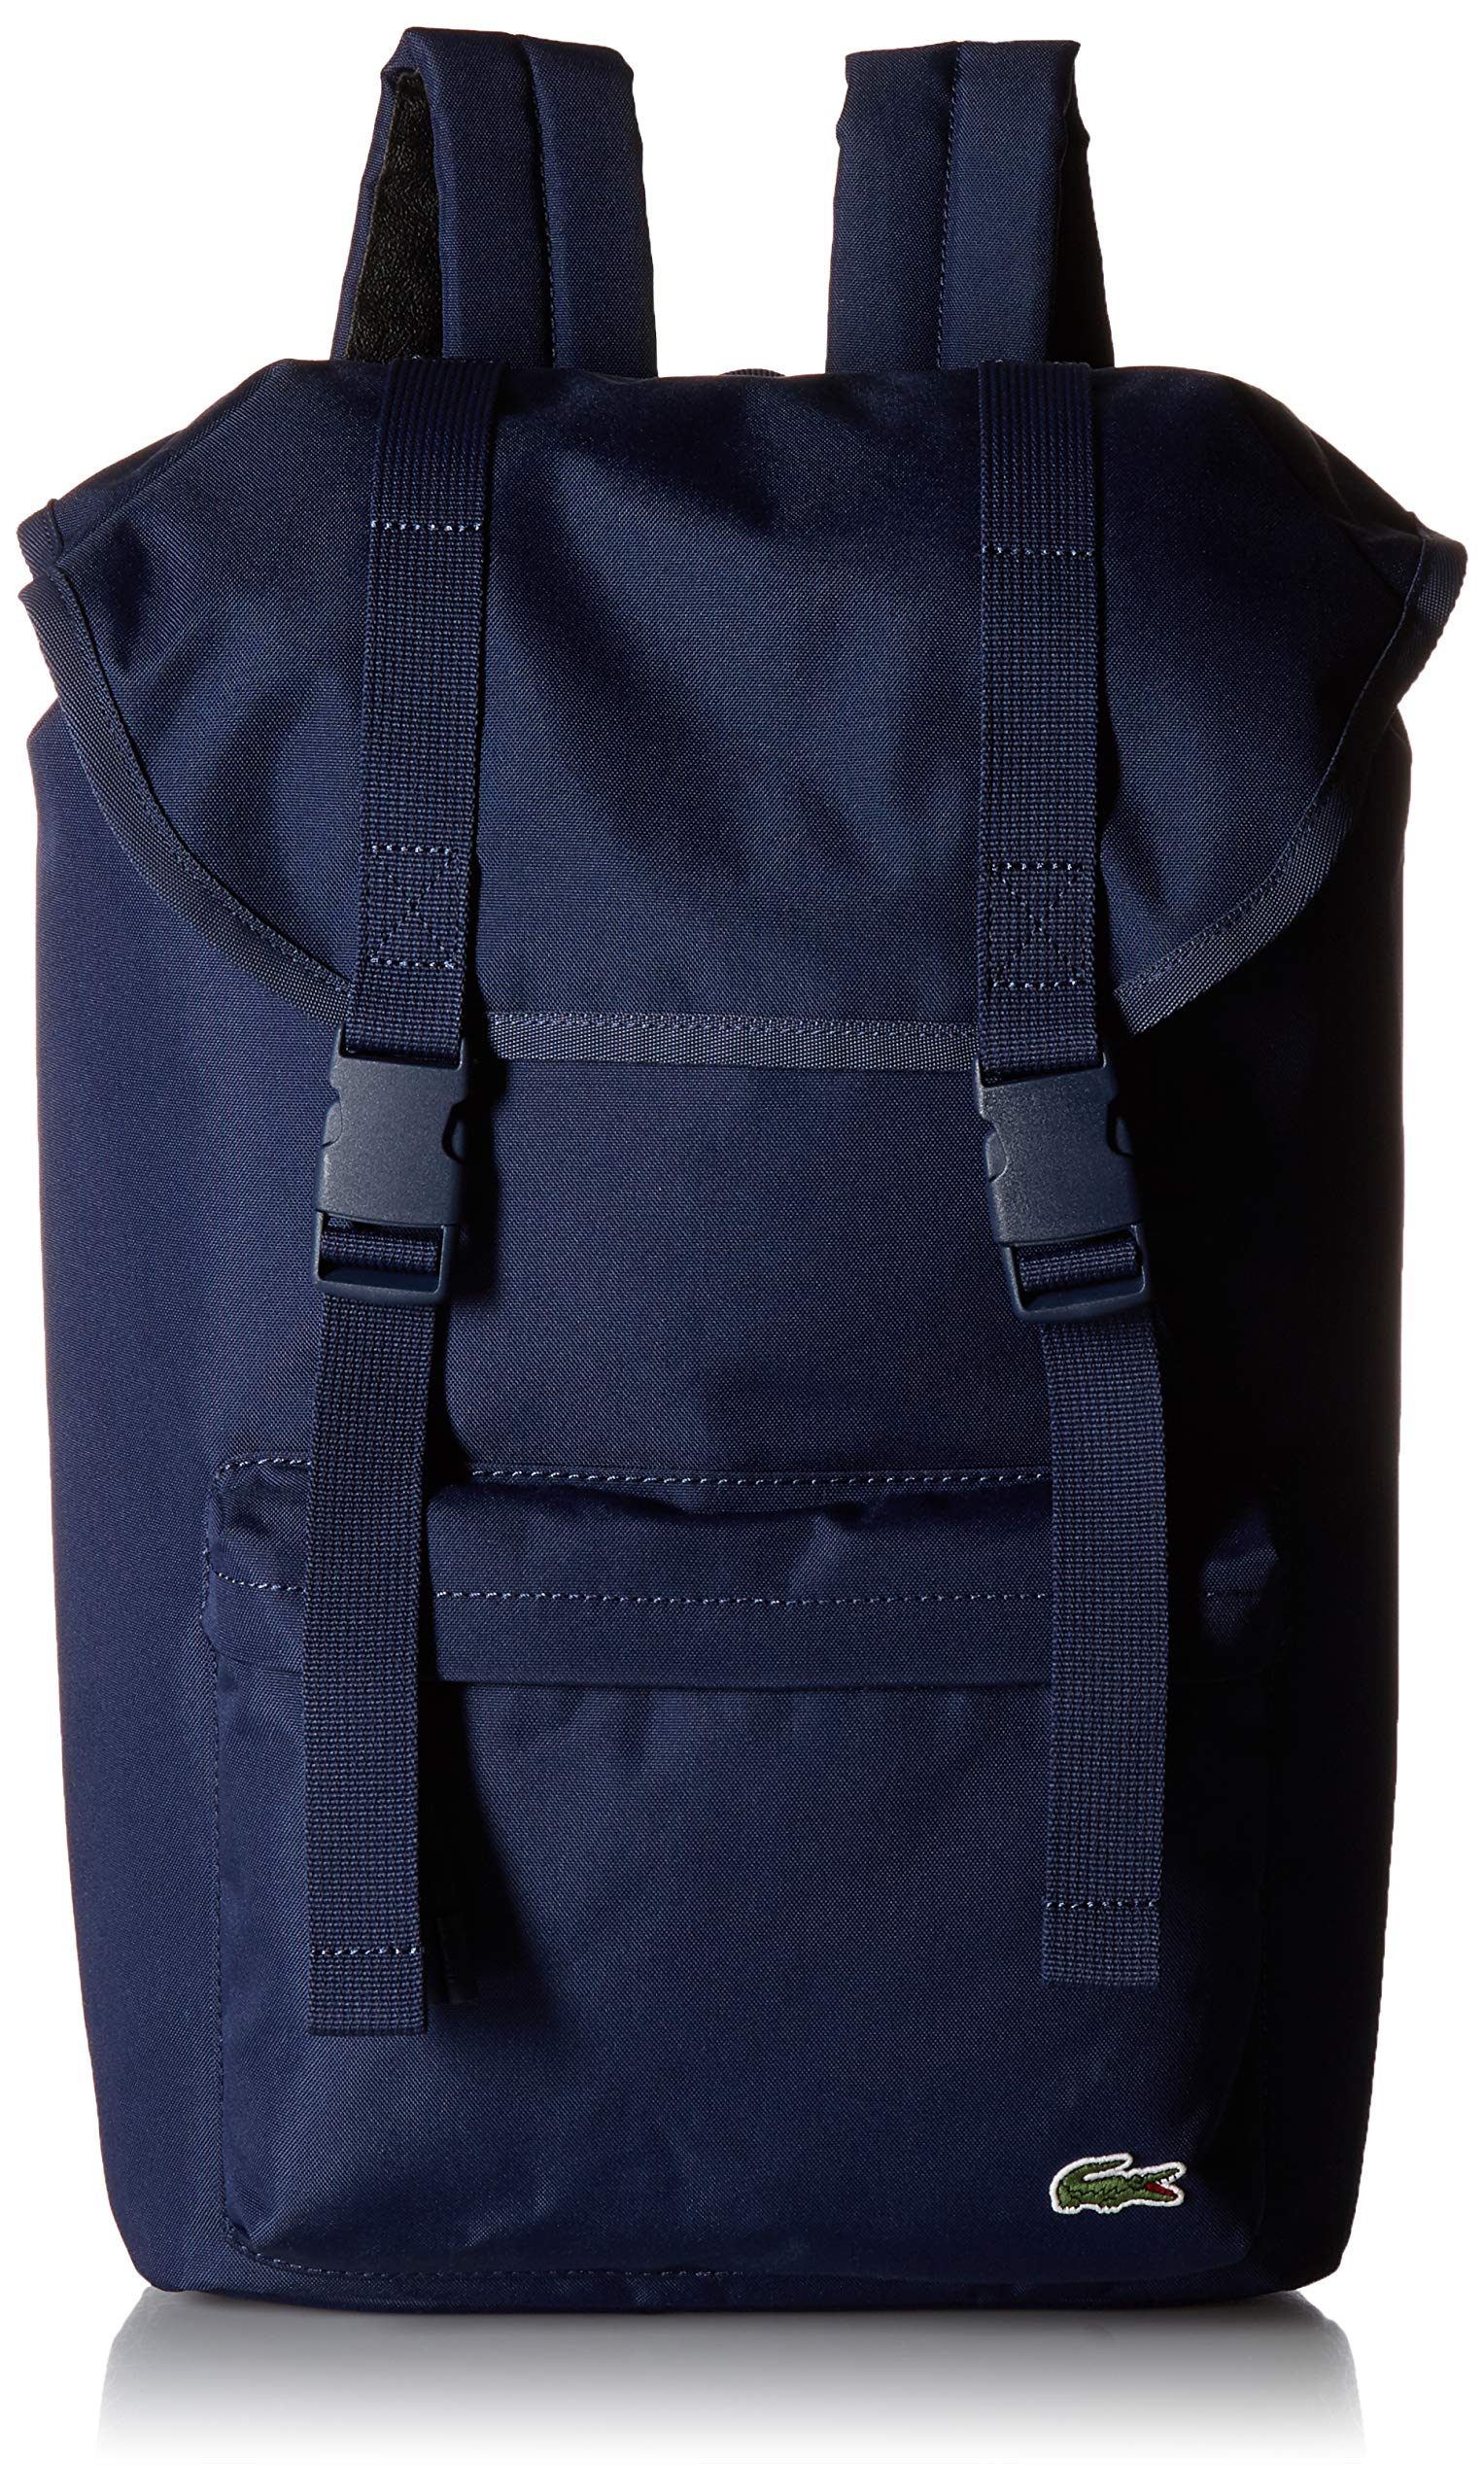 Lacoste Men's Neocroc Flap Backpack, Peacoat, 00